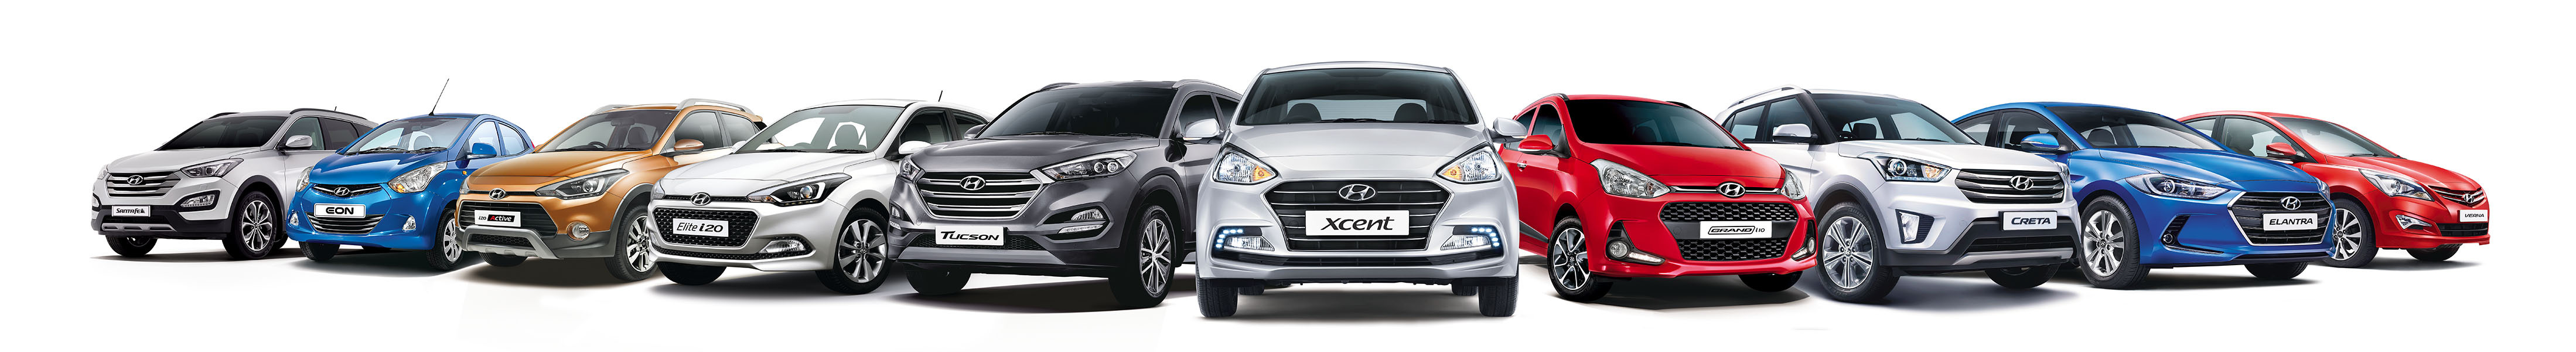 Hyundai offering a Special Service Support Package for the flood affected cars in Mumbai and Vapi